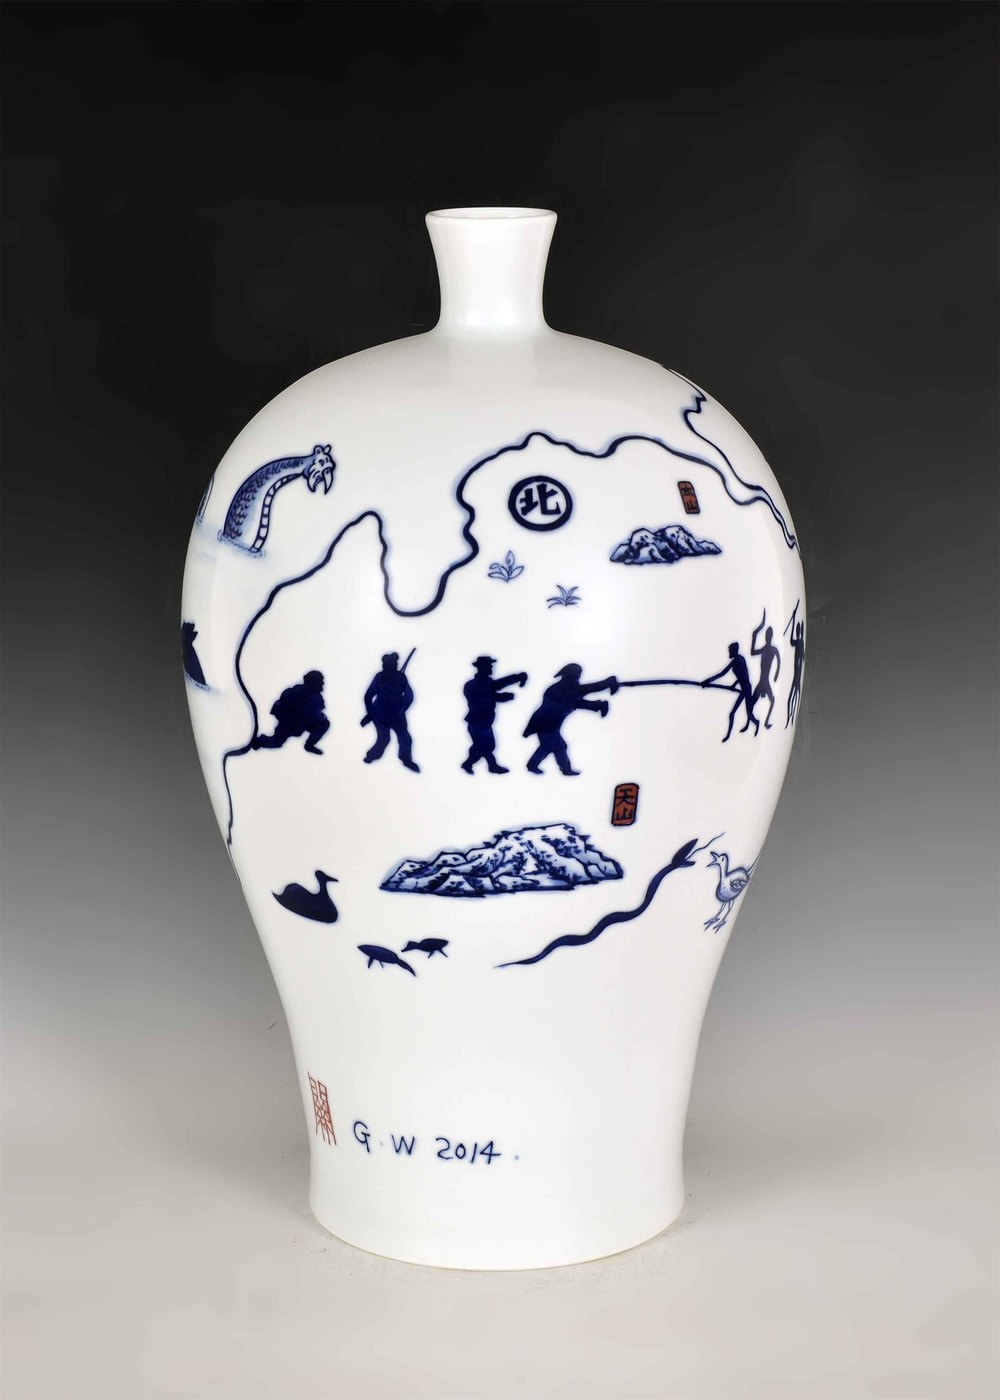 GUAN WEI     Wonderland No.9  2014 Ceramic 46 x 28   cm